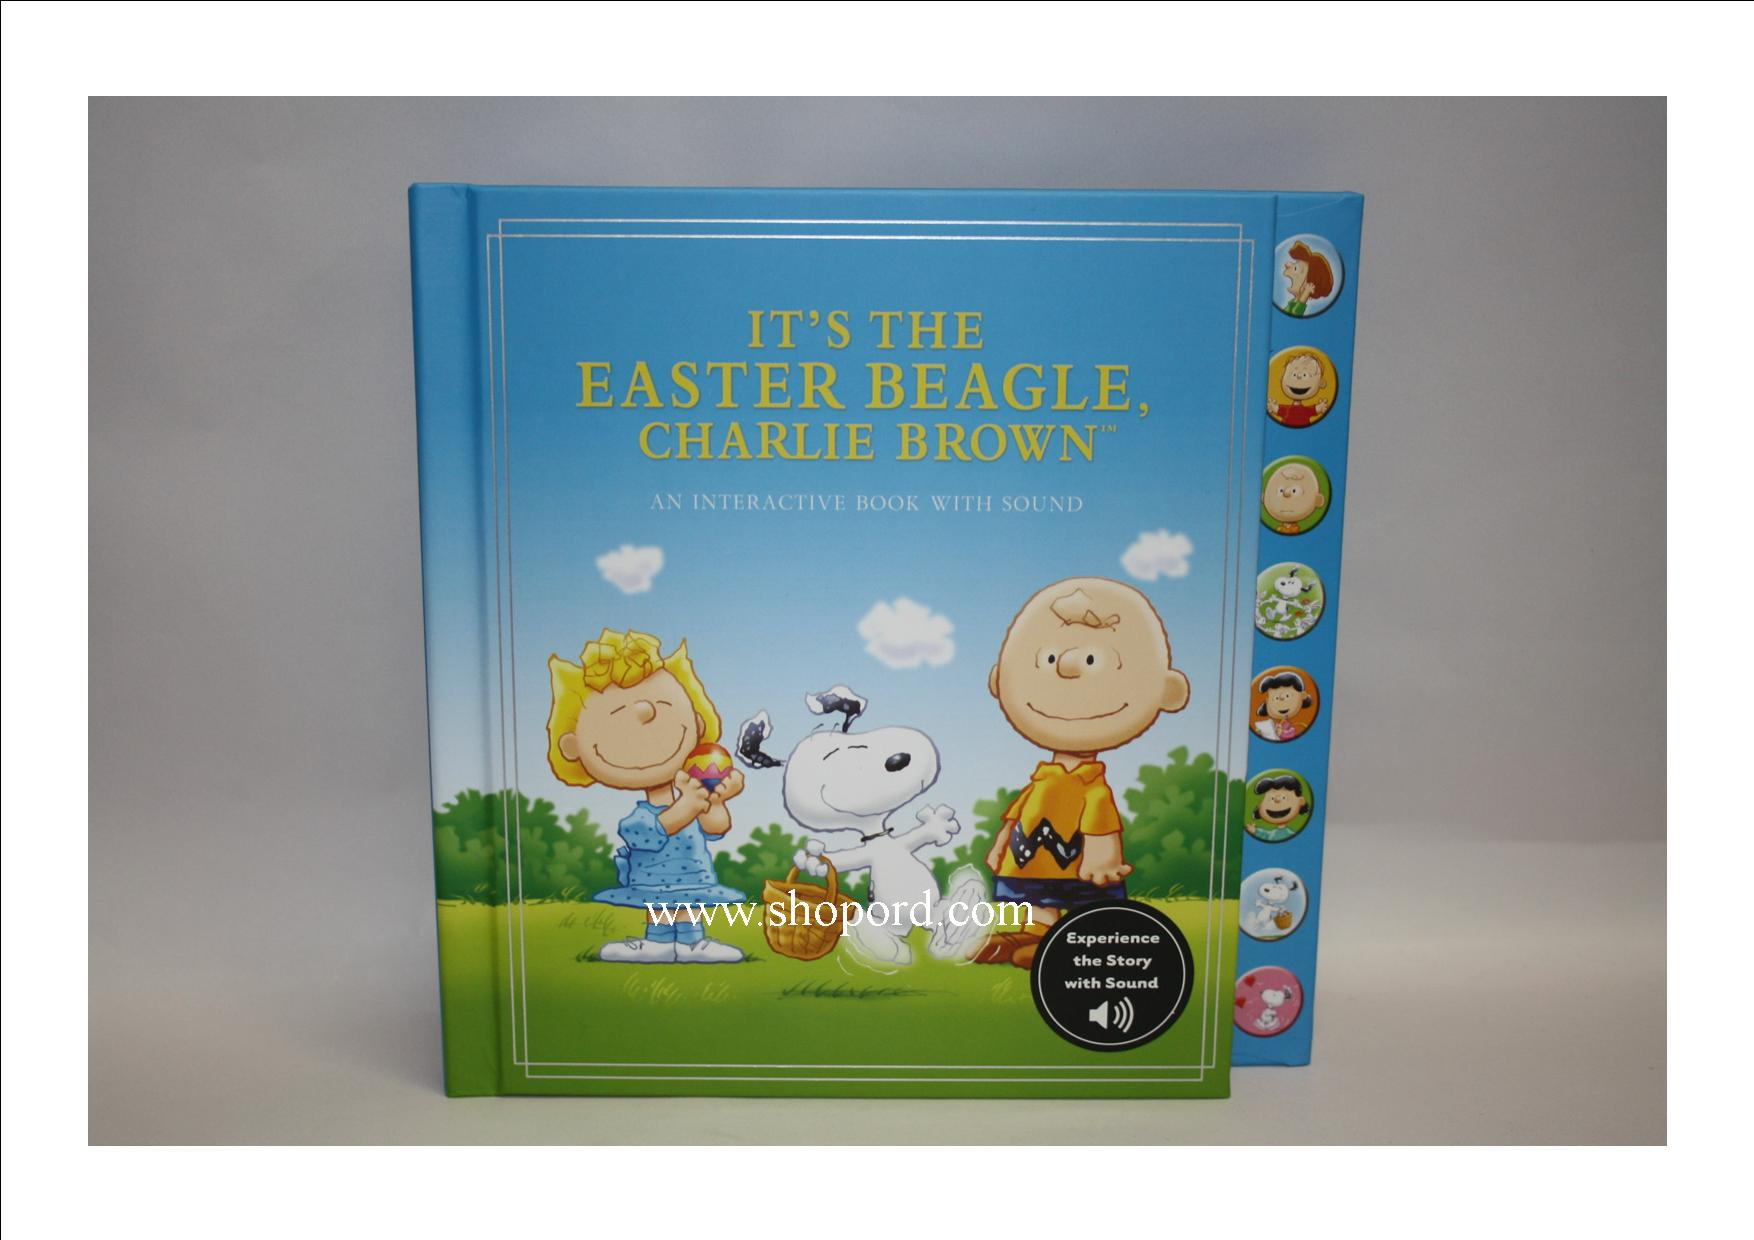 The Peanuts Gang Charlie Brown It's the Easter Beagle - With Sound and Music [Hardcover: by Charles M. Schulz] KOB8051